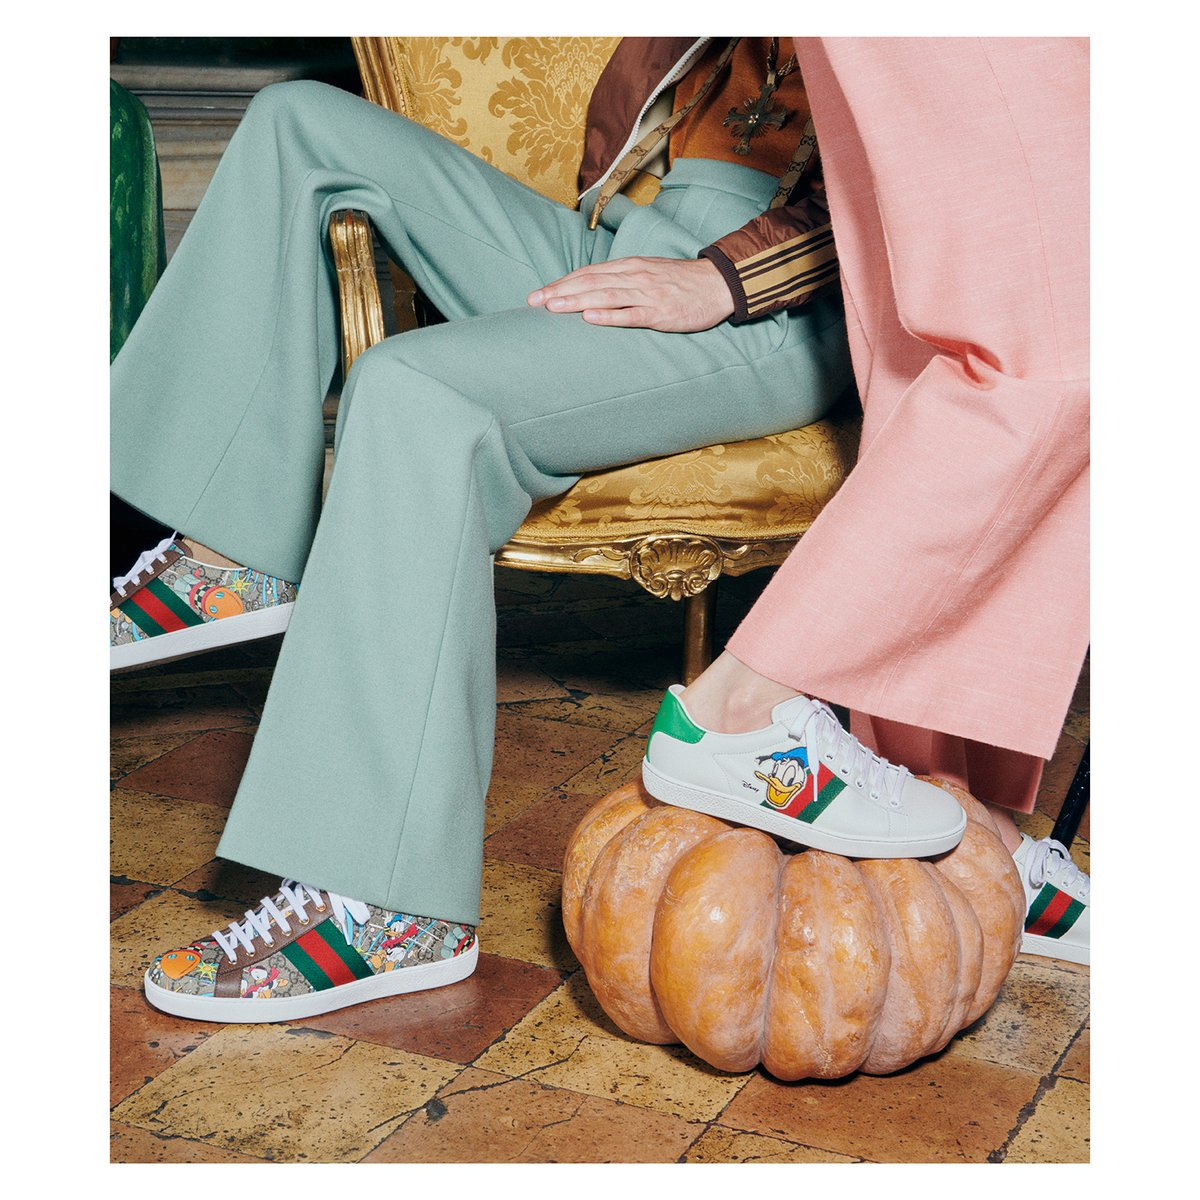 The #GucciAce sneaker, with its streamlined shape and House Web stripe detail, is printed with a Disney motif for the House's ongoing collaboration. Discover more . #DisneyxGucci #AlessandroMichele #GucciEpilogue